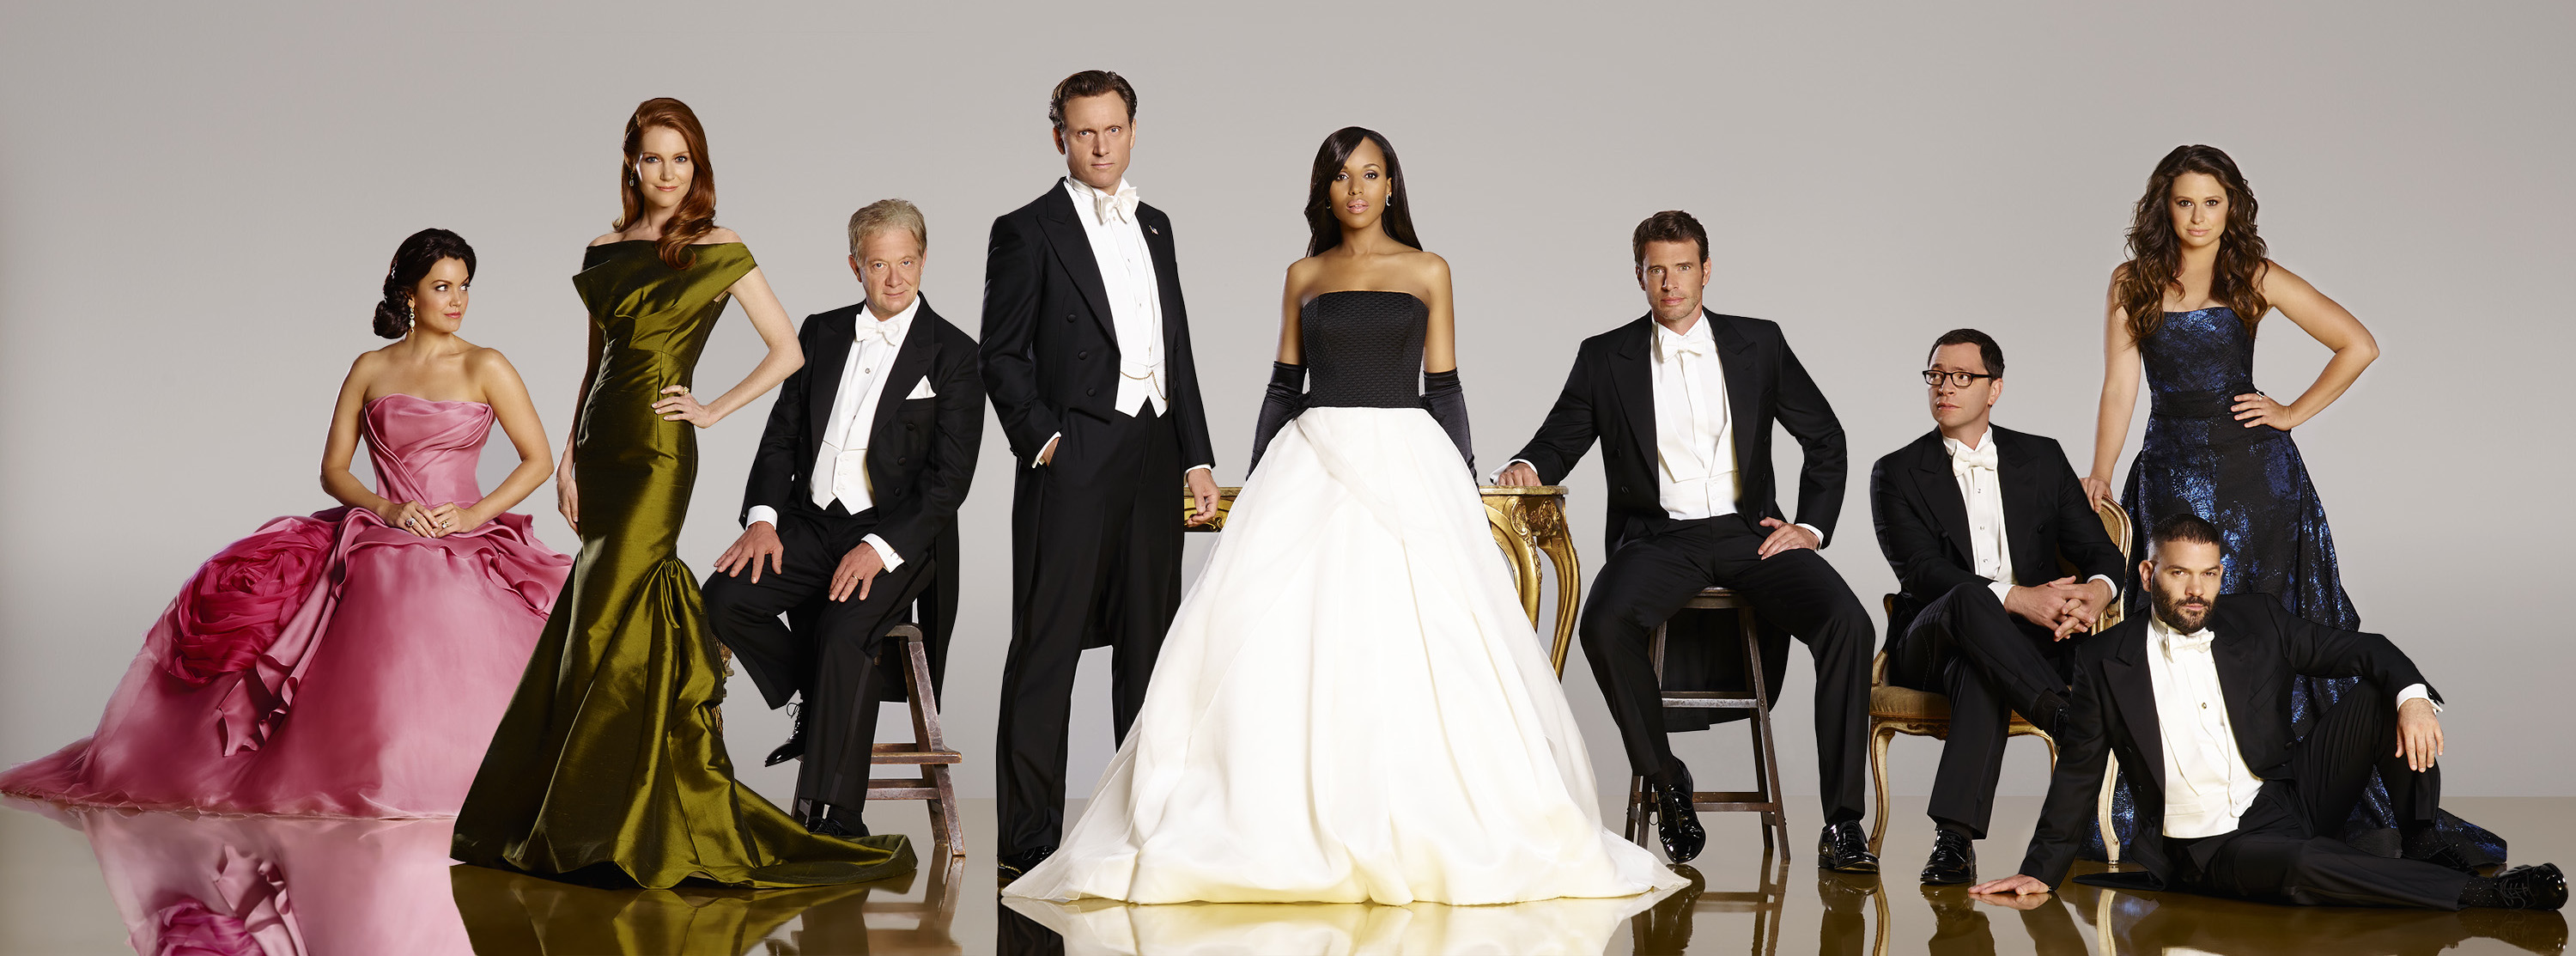 Scandal-Cast(4).jpg